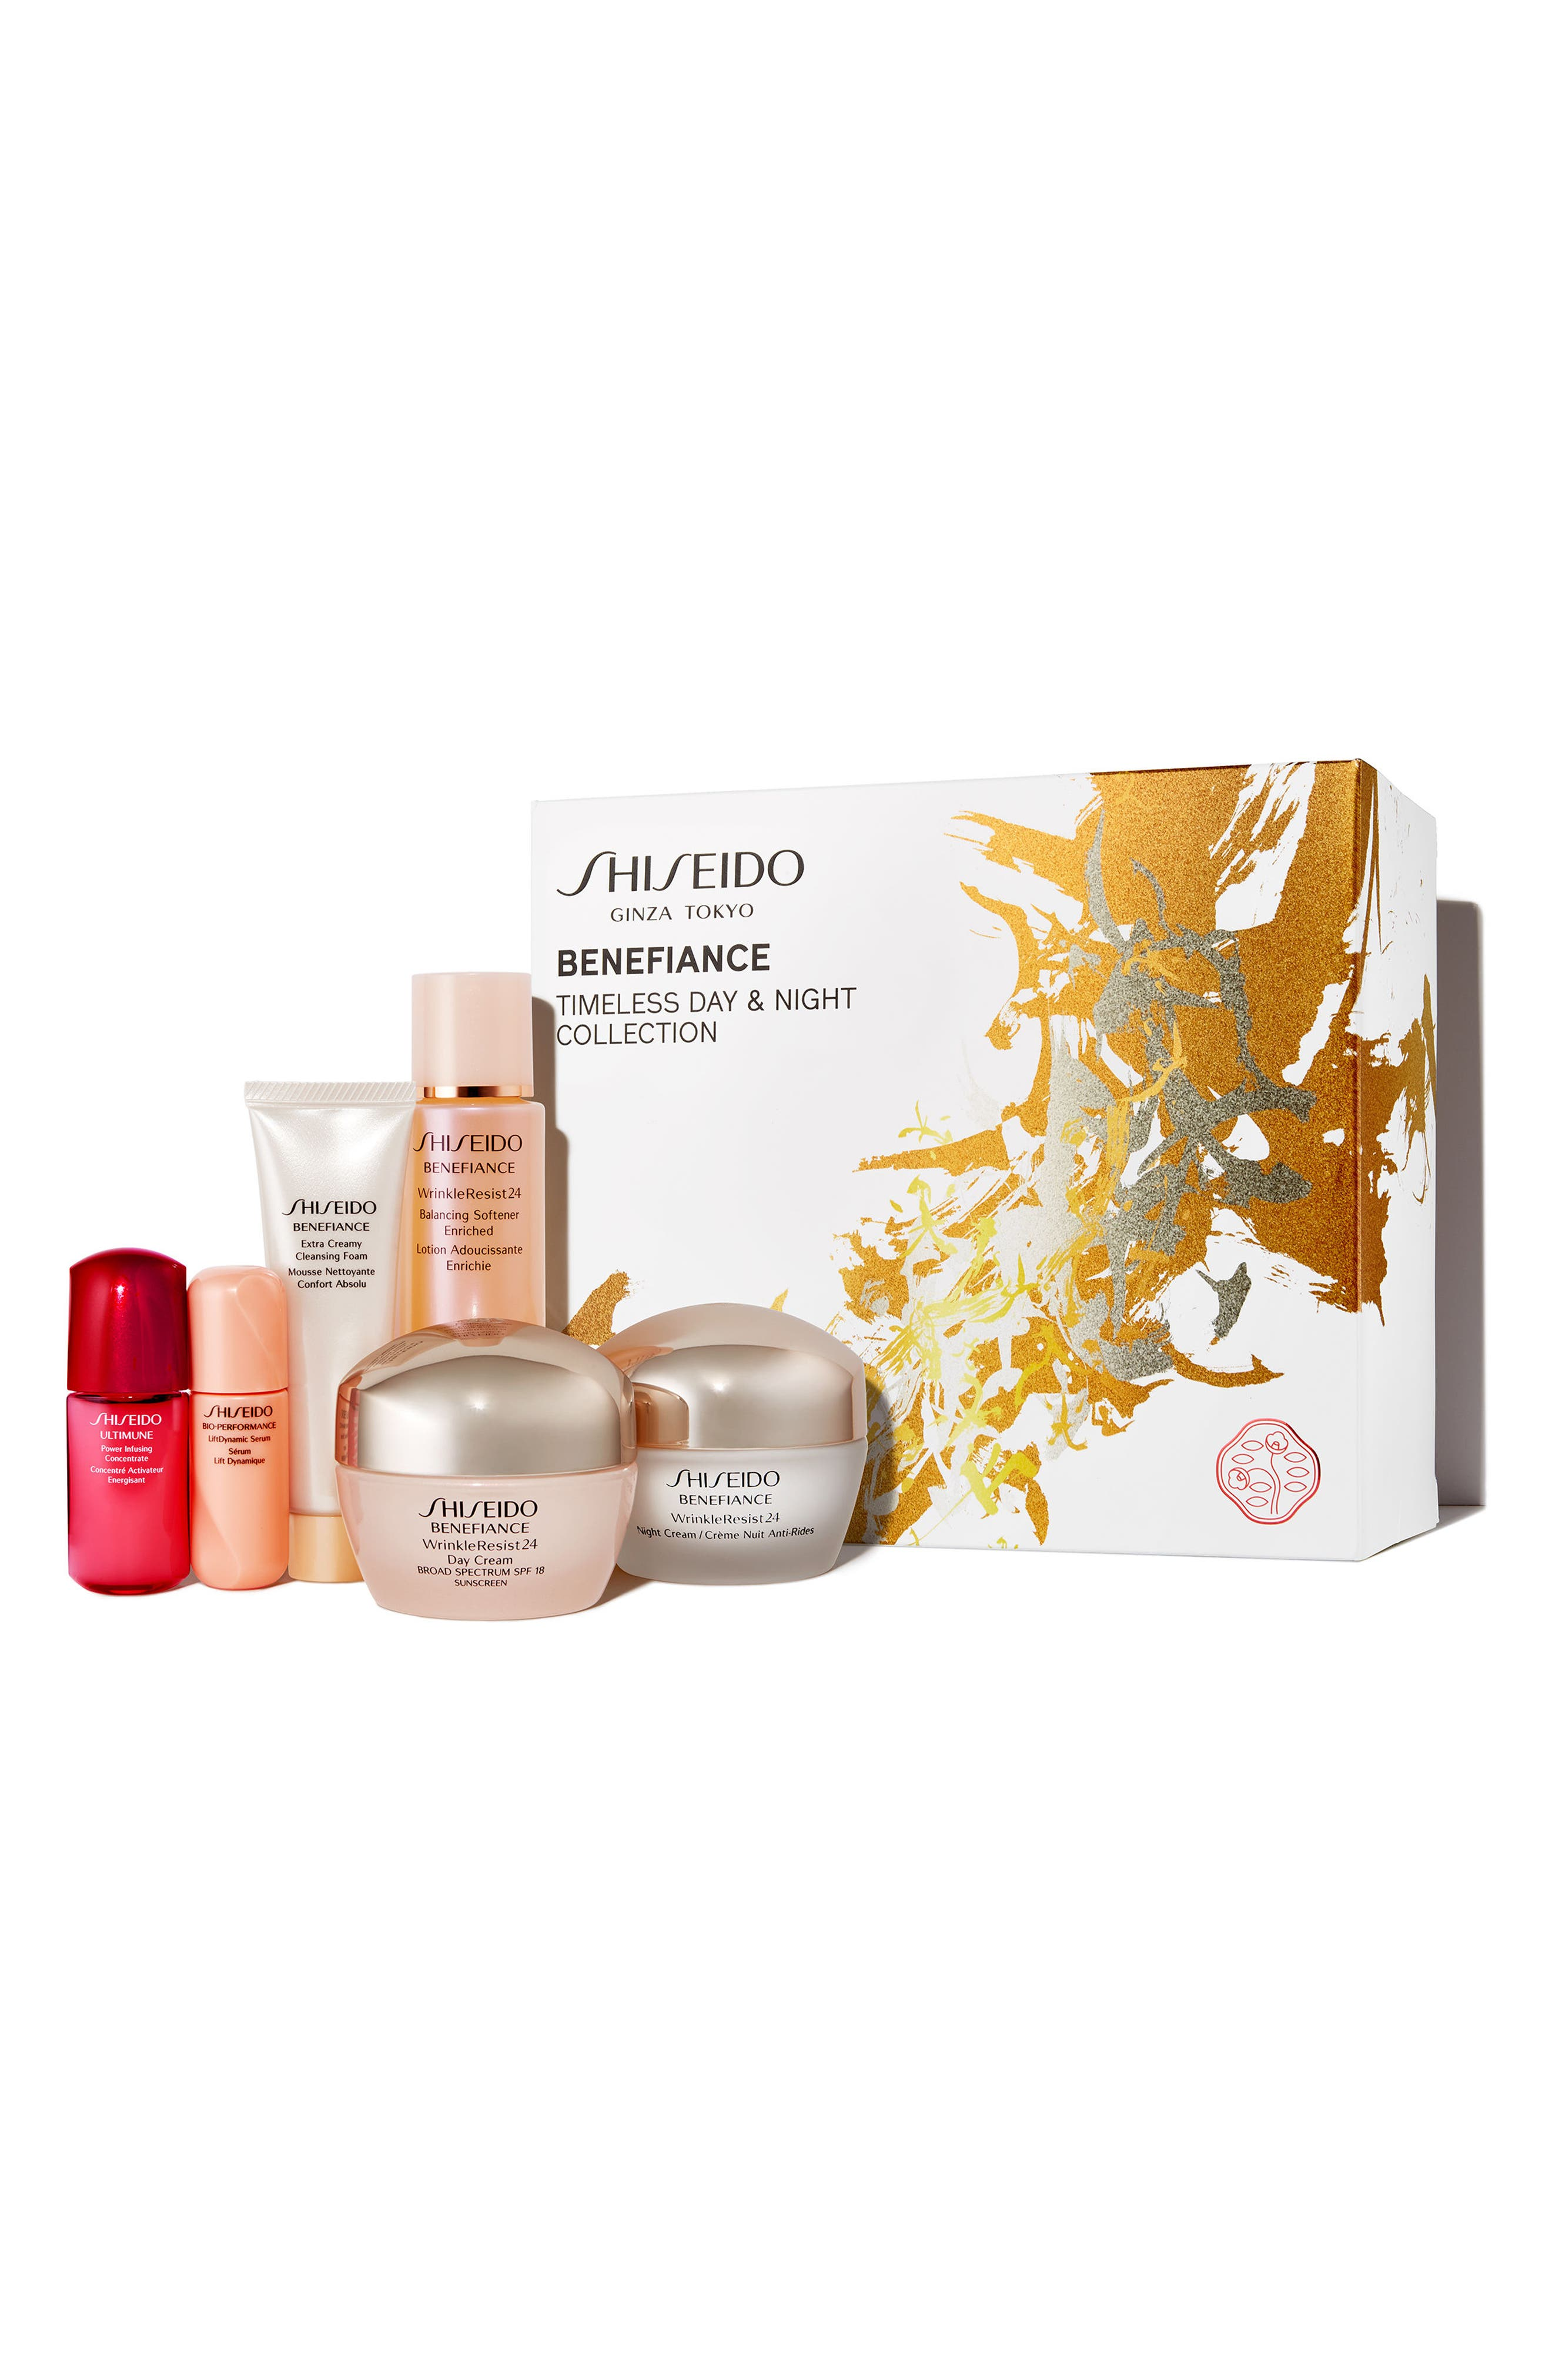 Alternate Image 1 Selected - Shiseido Timeless Day & Night Collection ($193 Value)